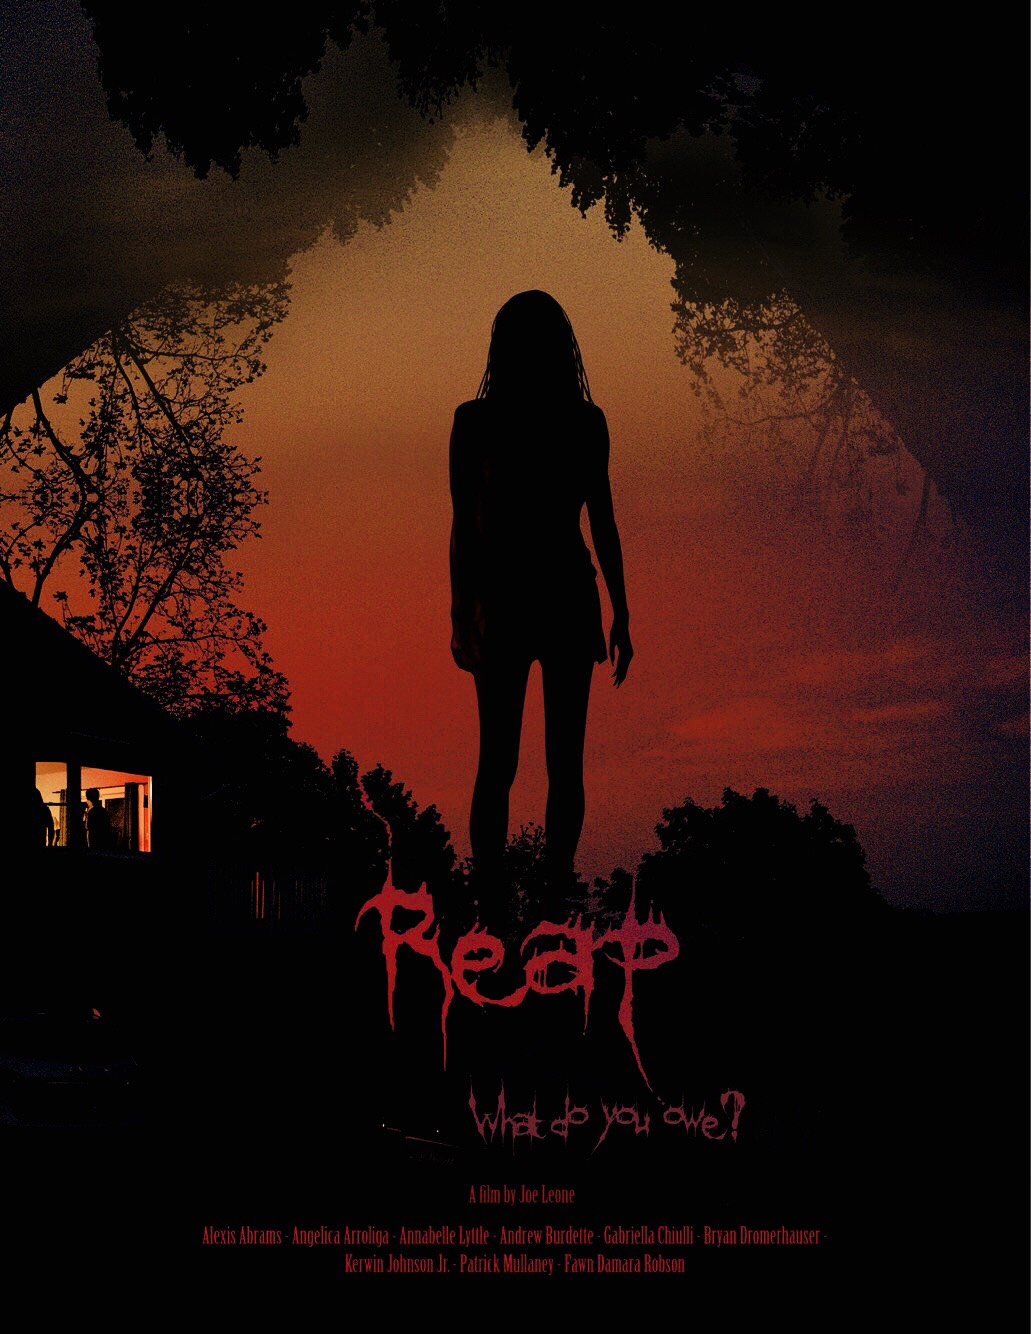 Reap hd on soap2day